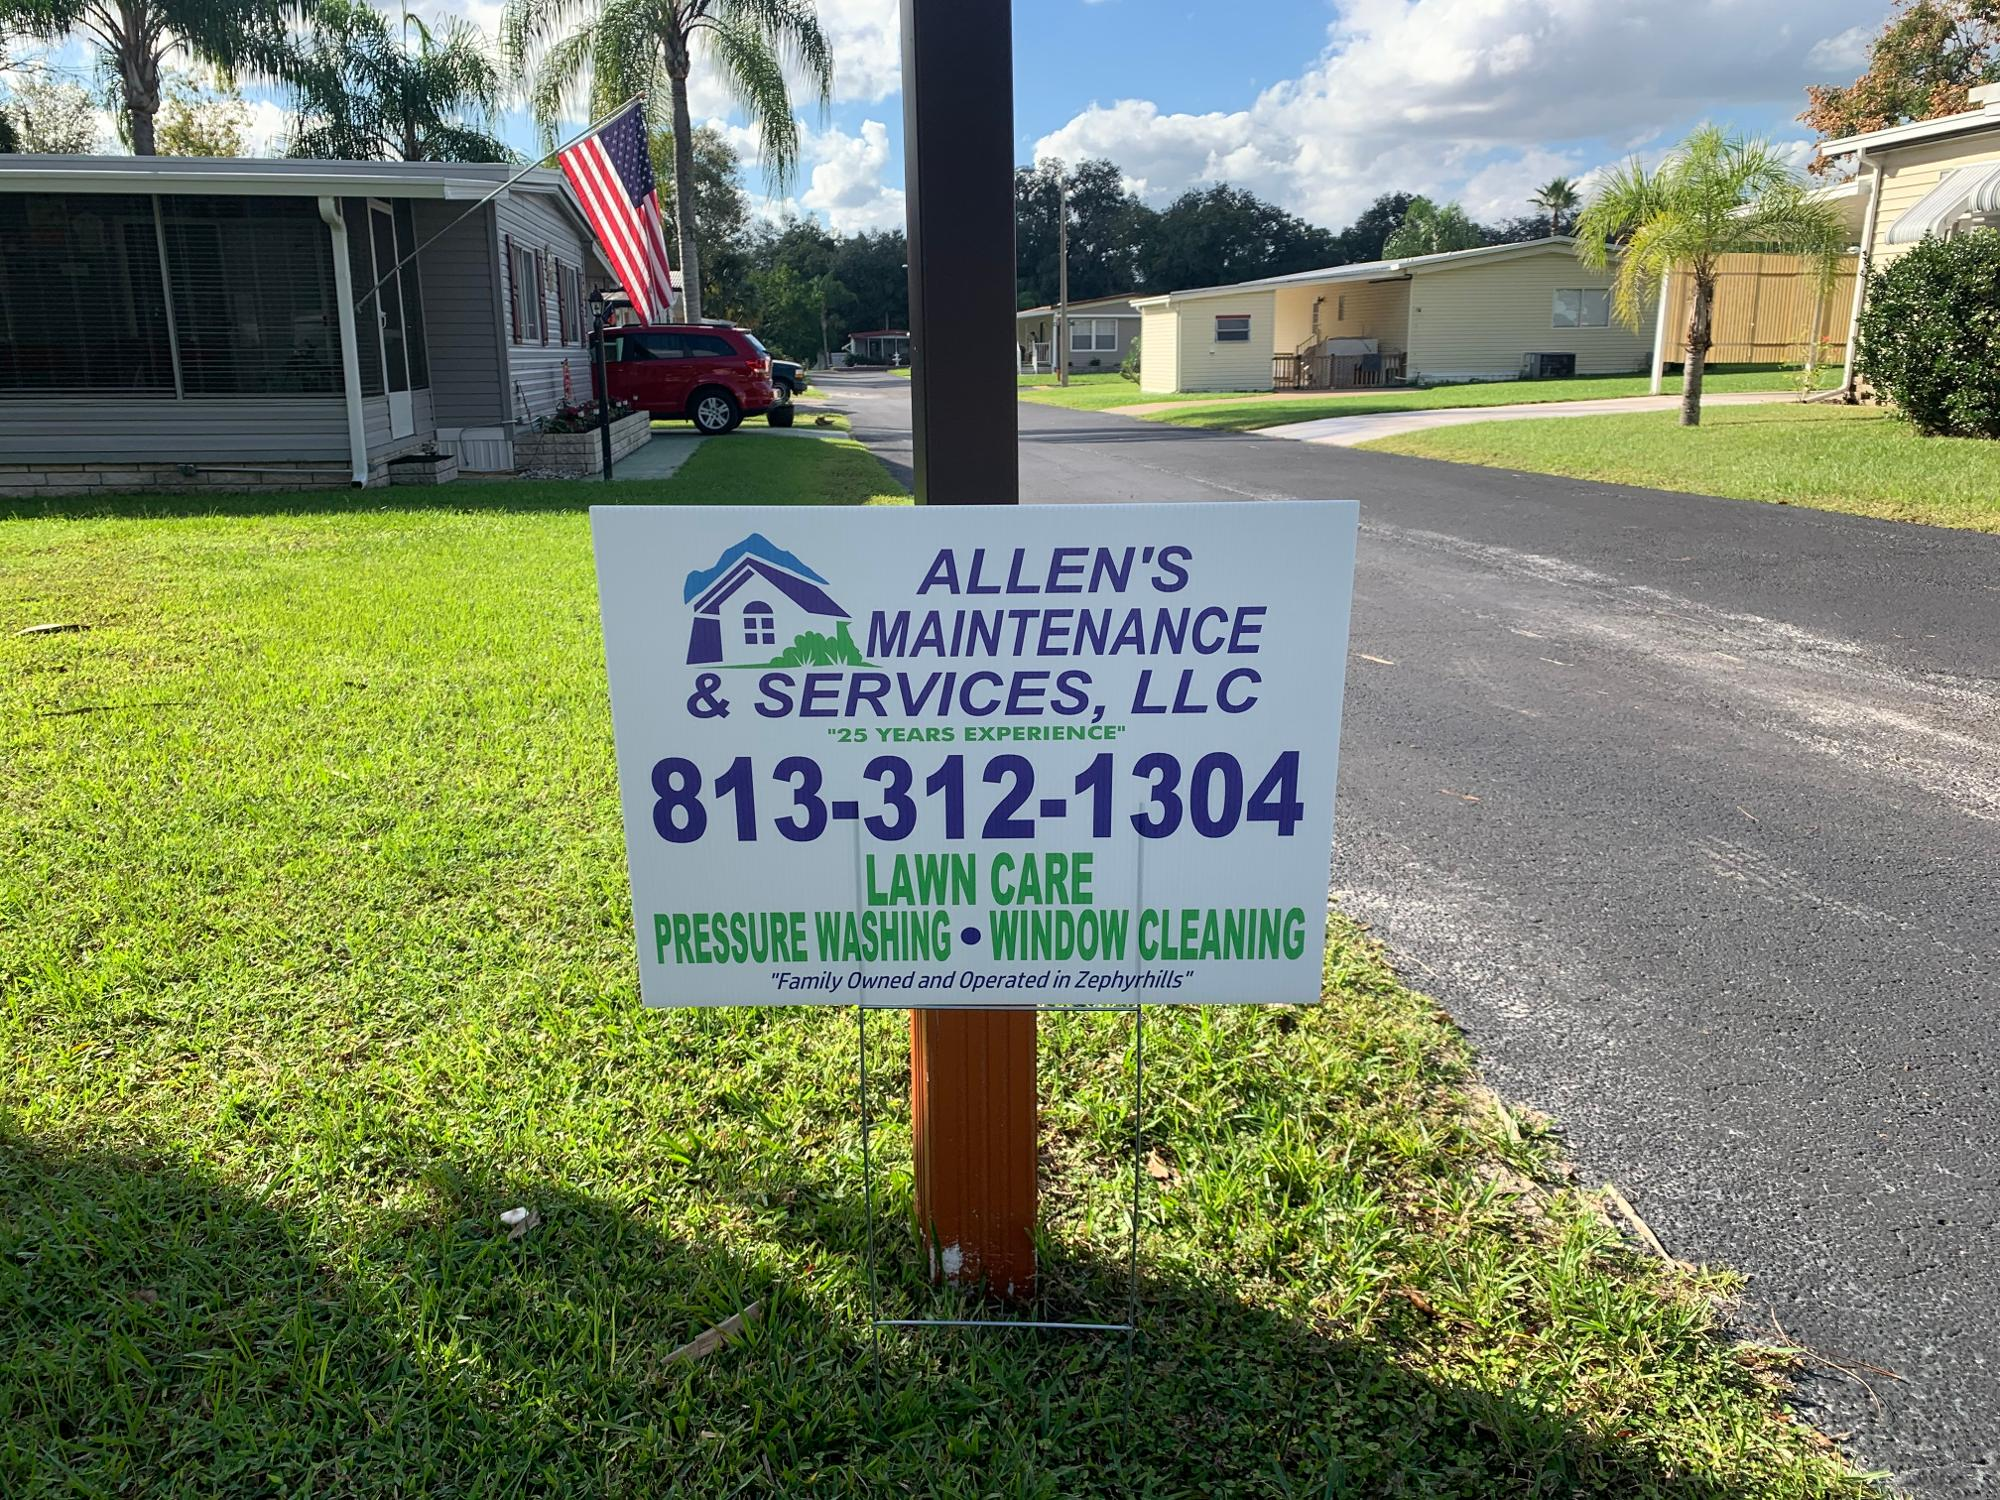 Allen's Maintenance & Services LLC